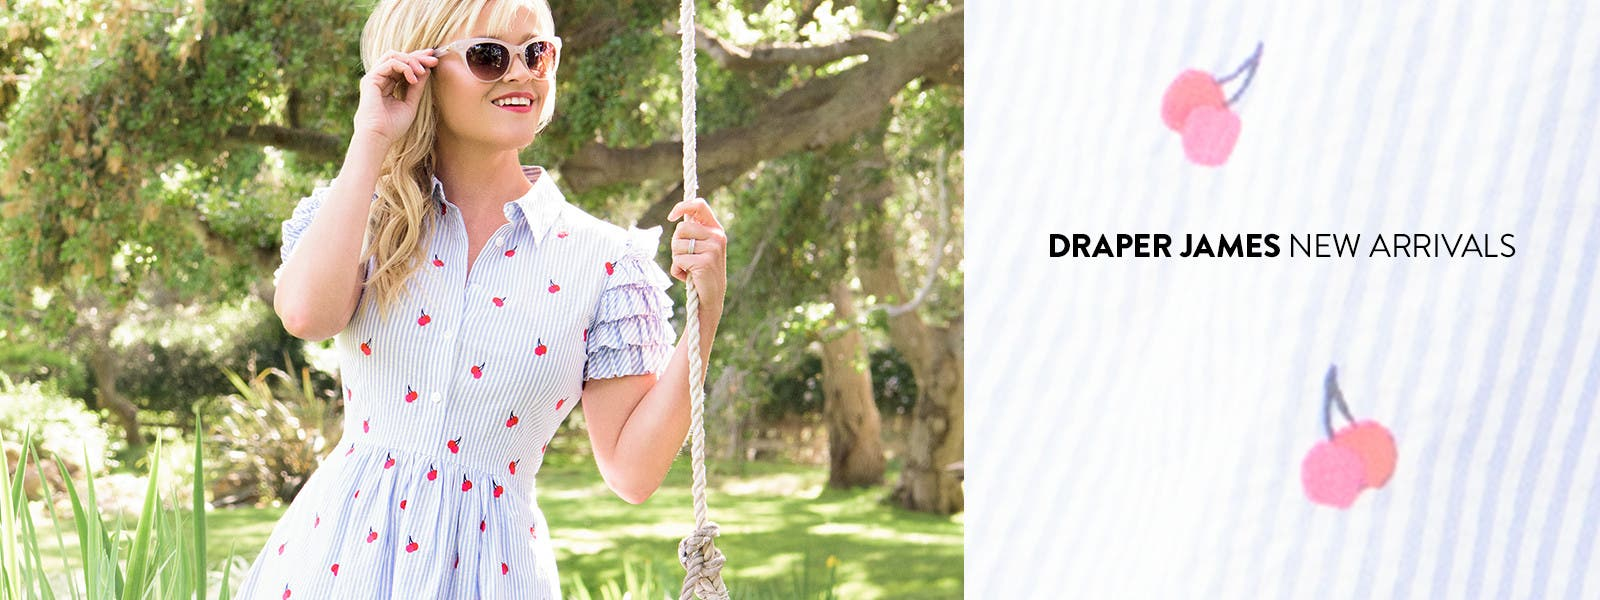 New arrivals from Draper James, founded by Reese Witherspoon.